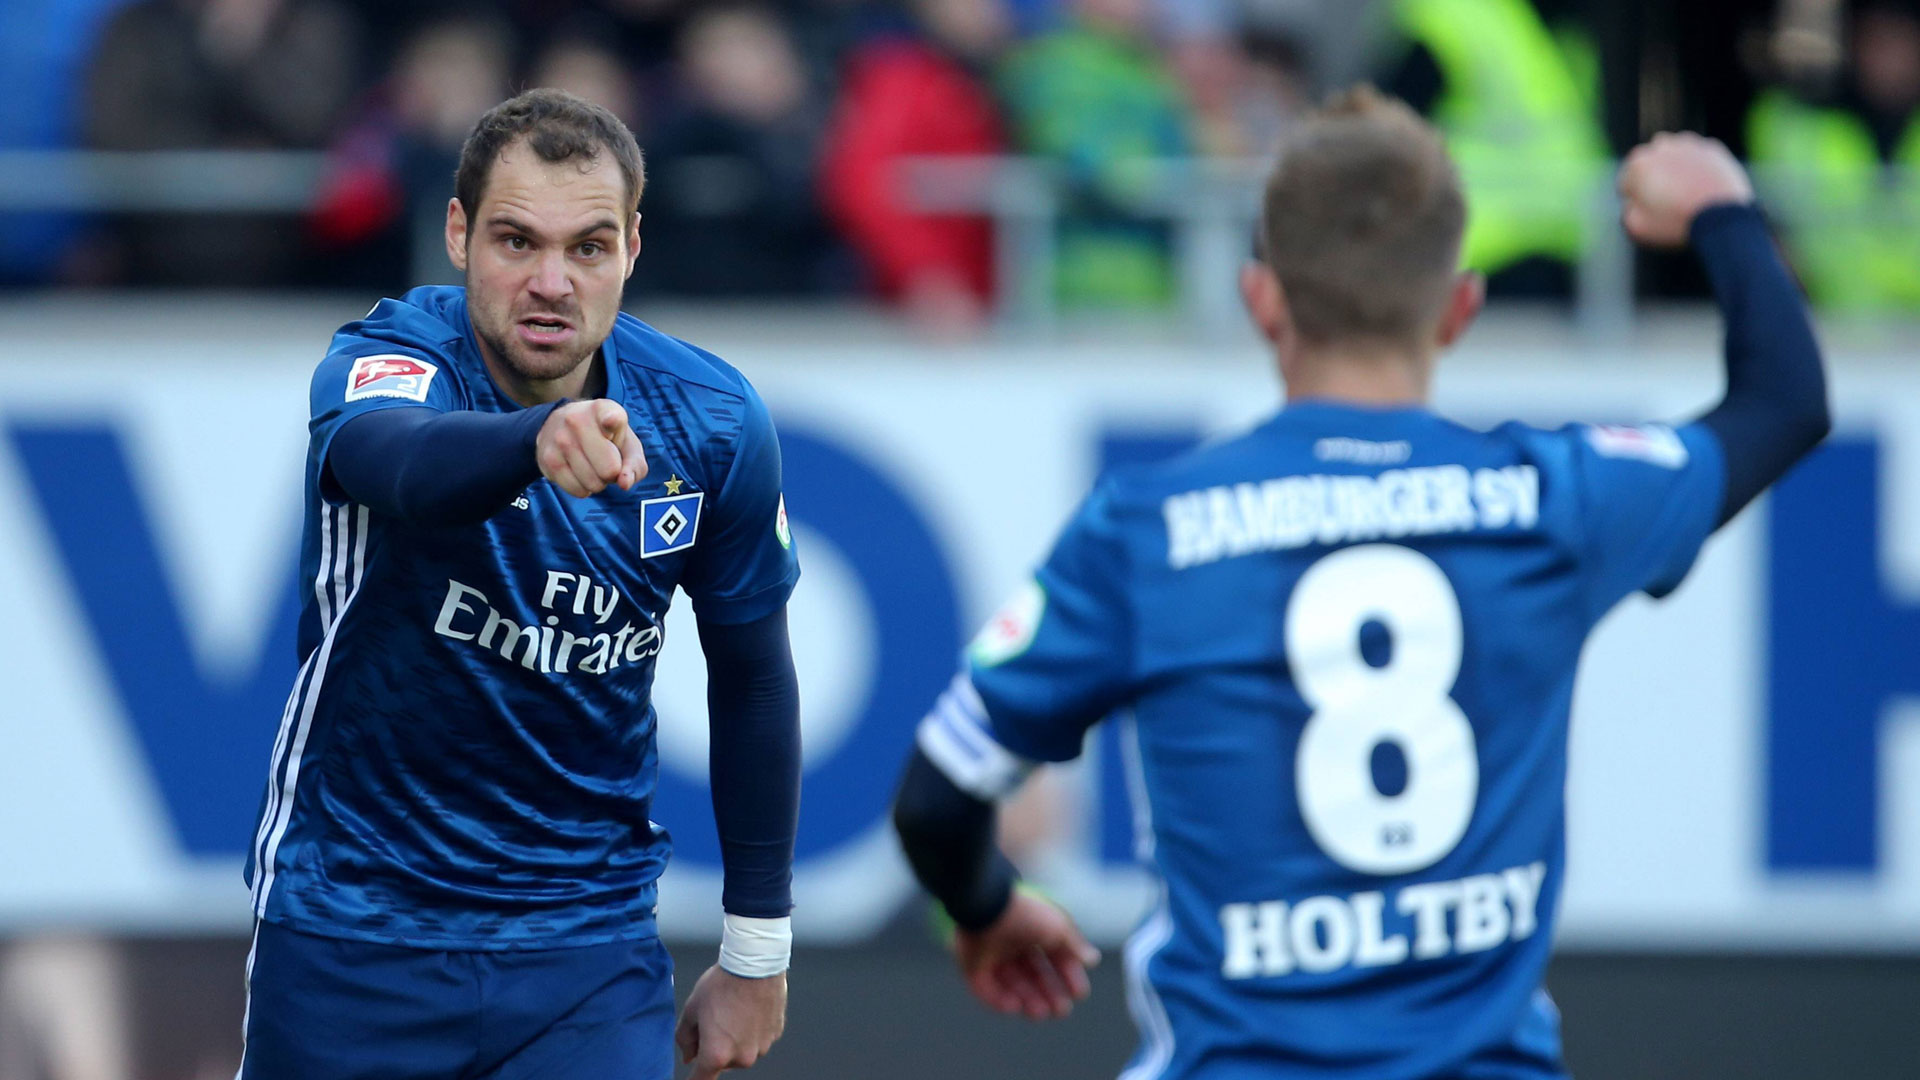 ONLY GERMANY Pierre-Michel Lasogga HSV Hamburger SV Bundesliga 16022019